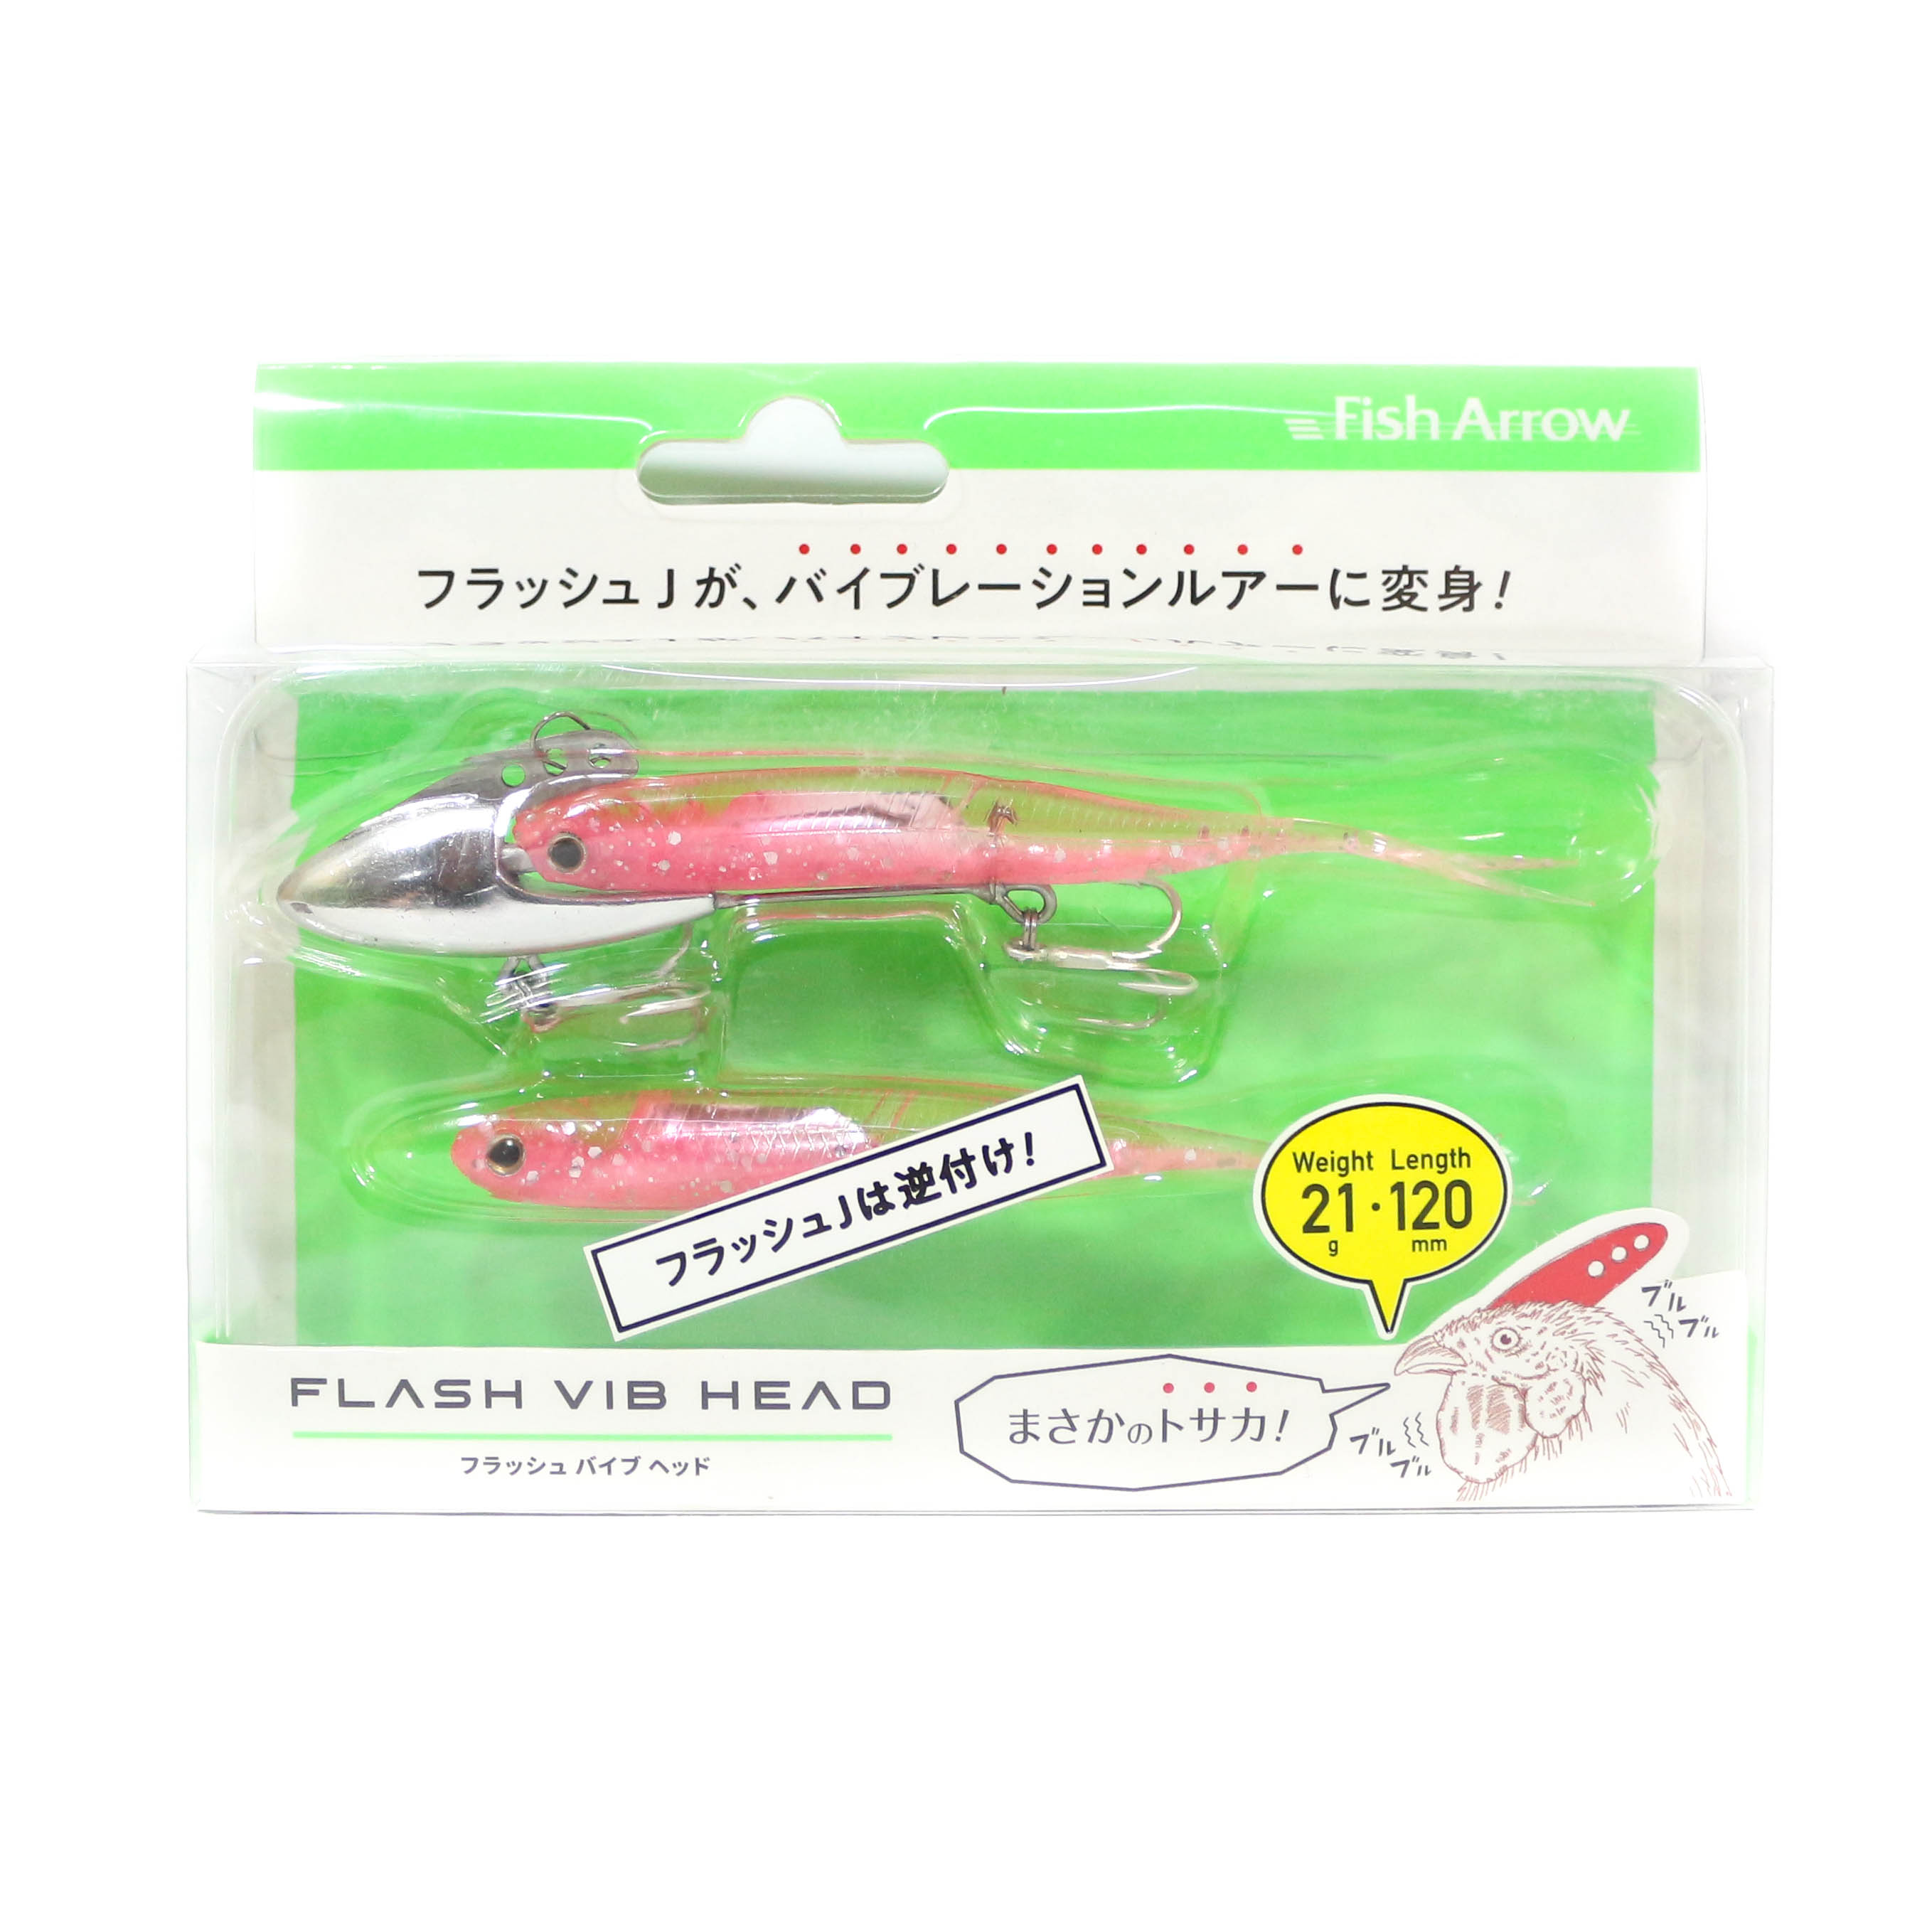 Fish Arrow Flash Vibe Head 21 grams 120mm 02 (3951)